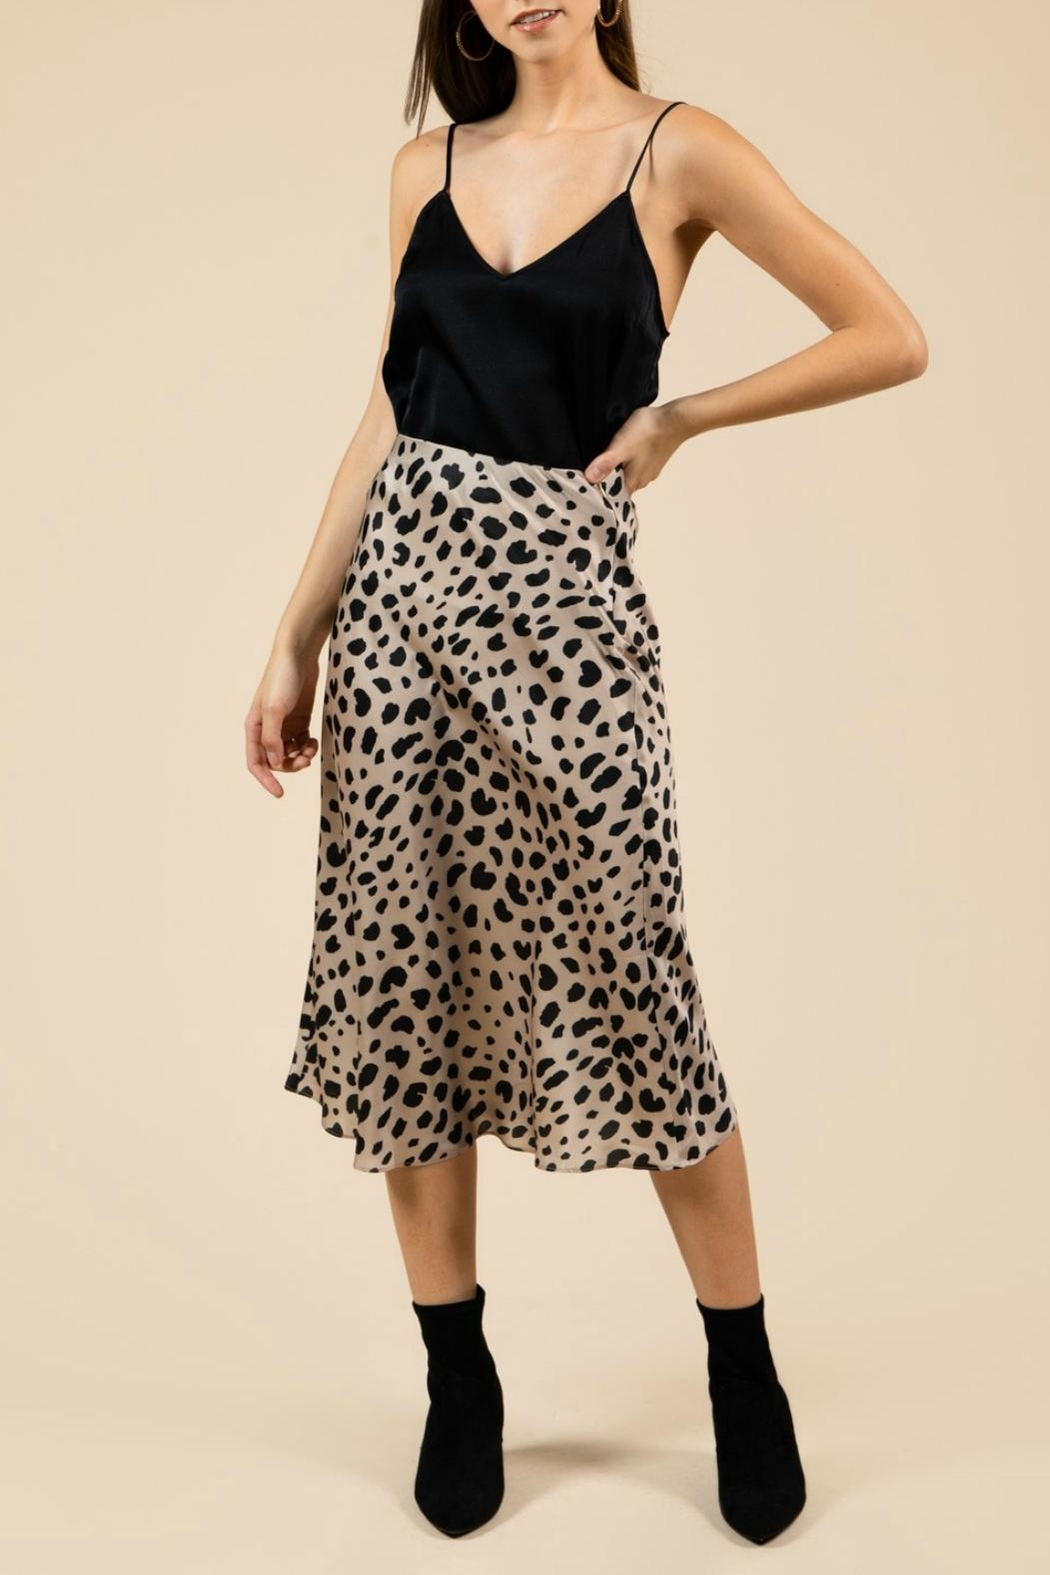 Pretty Little Things Leopard Midi Skirt - Main Image